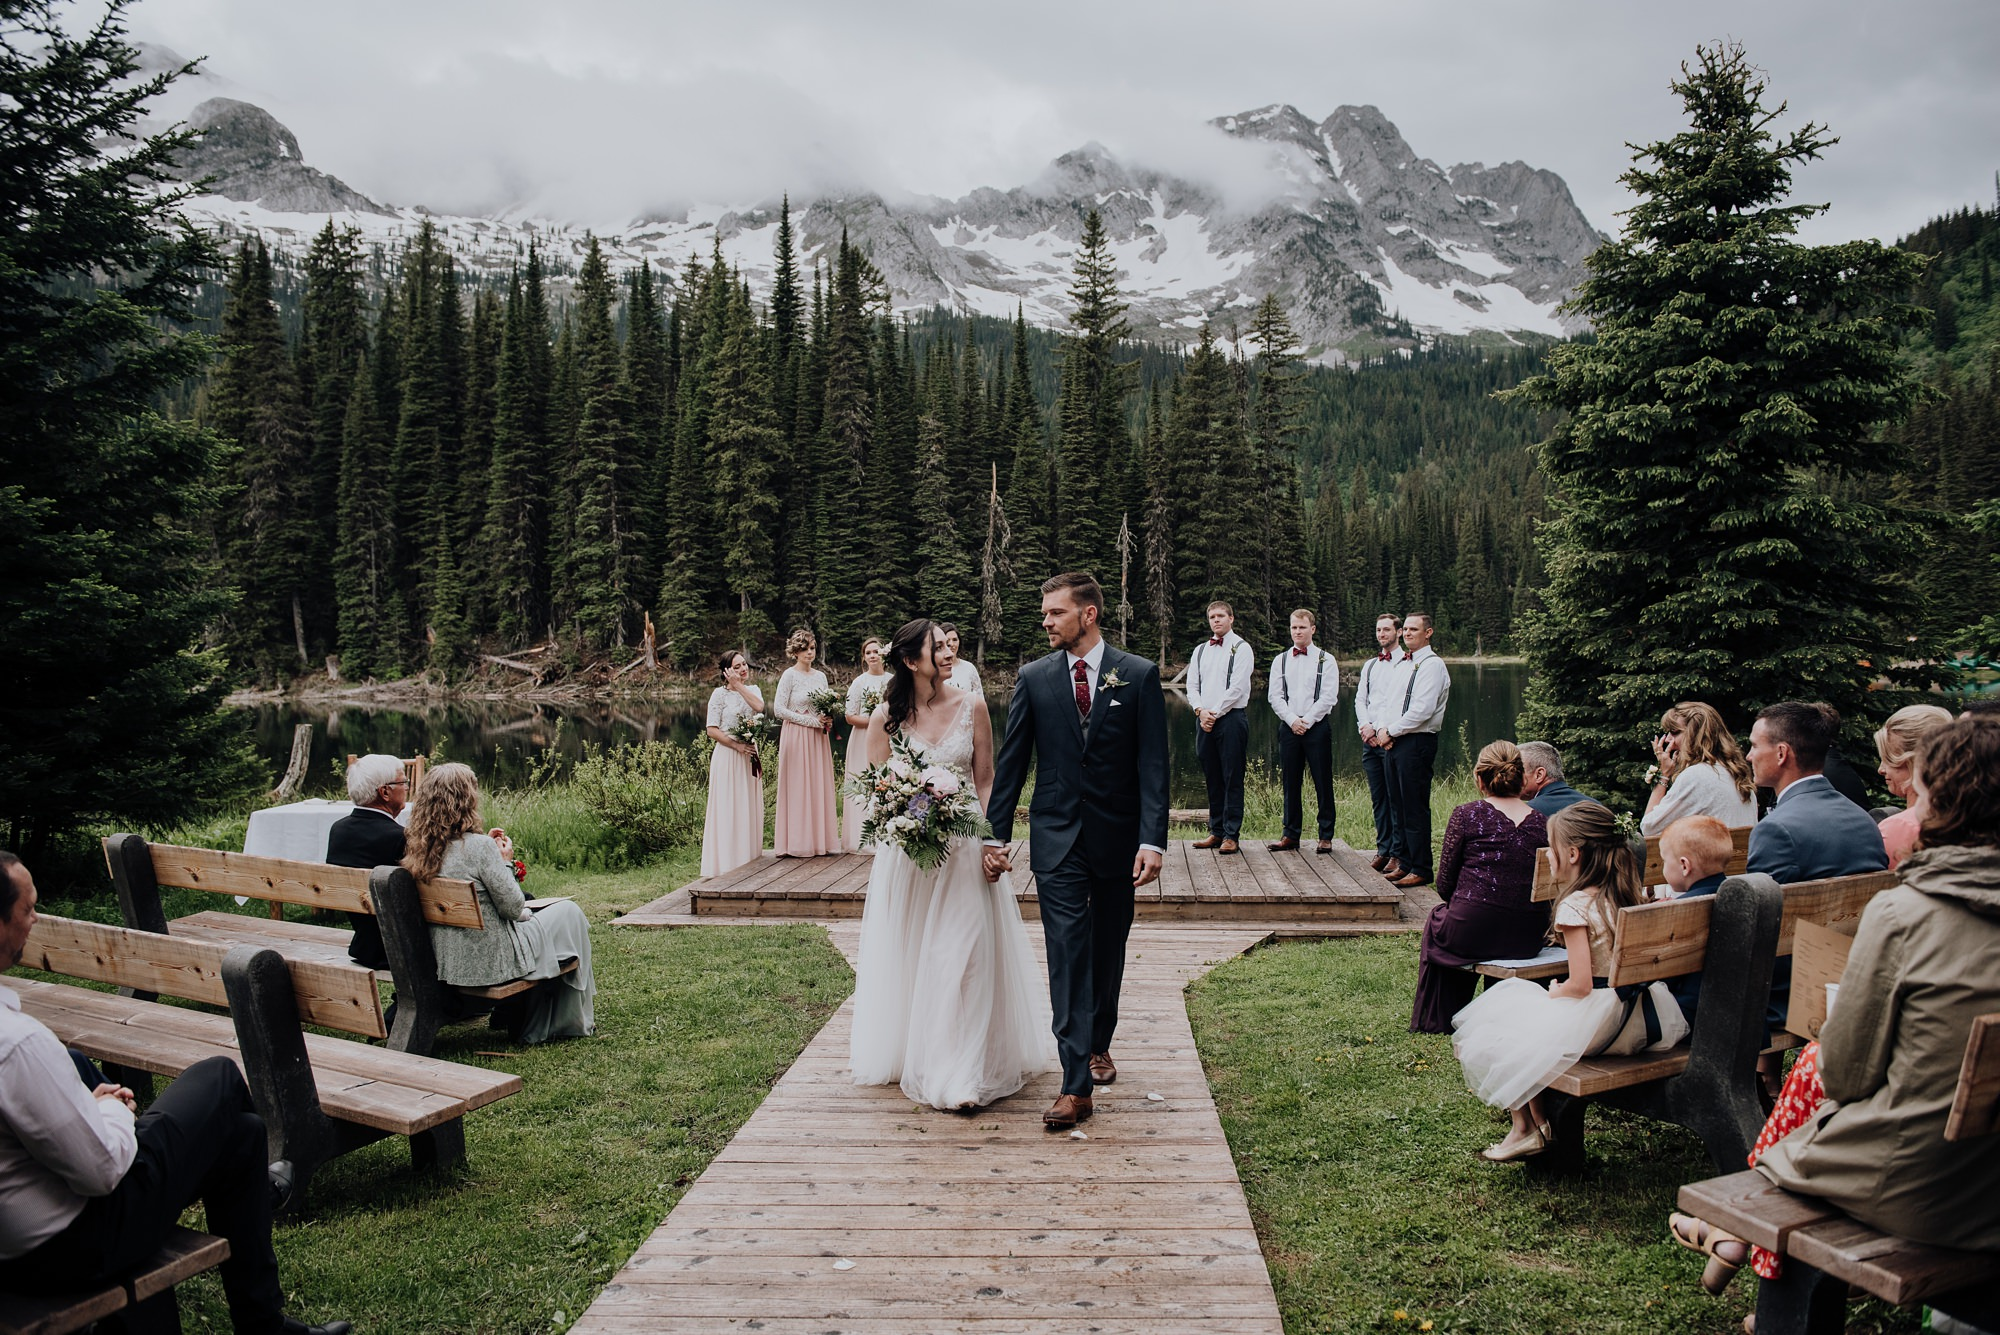 bride and groom during recessional after ceremony with mountain views